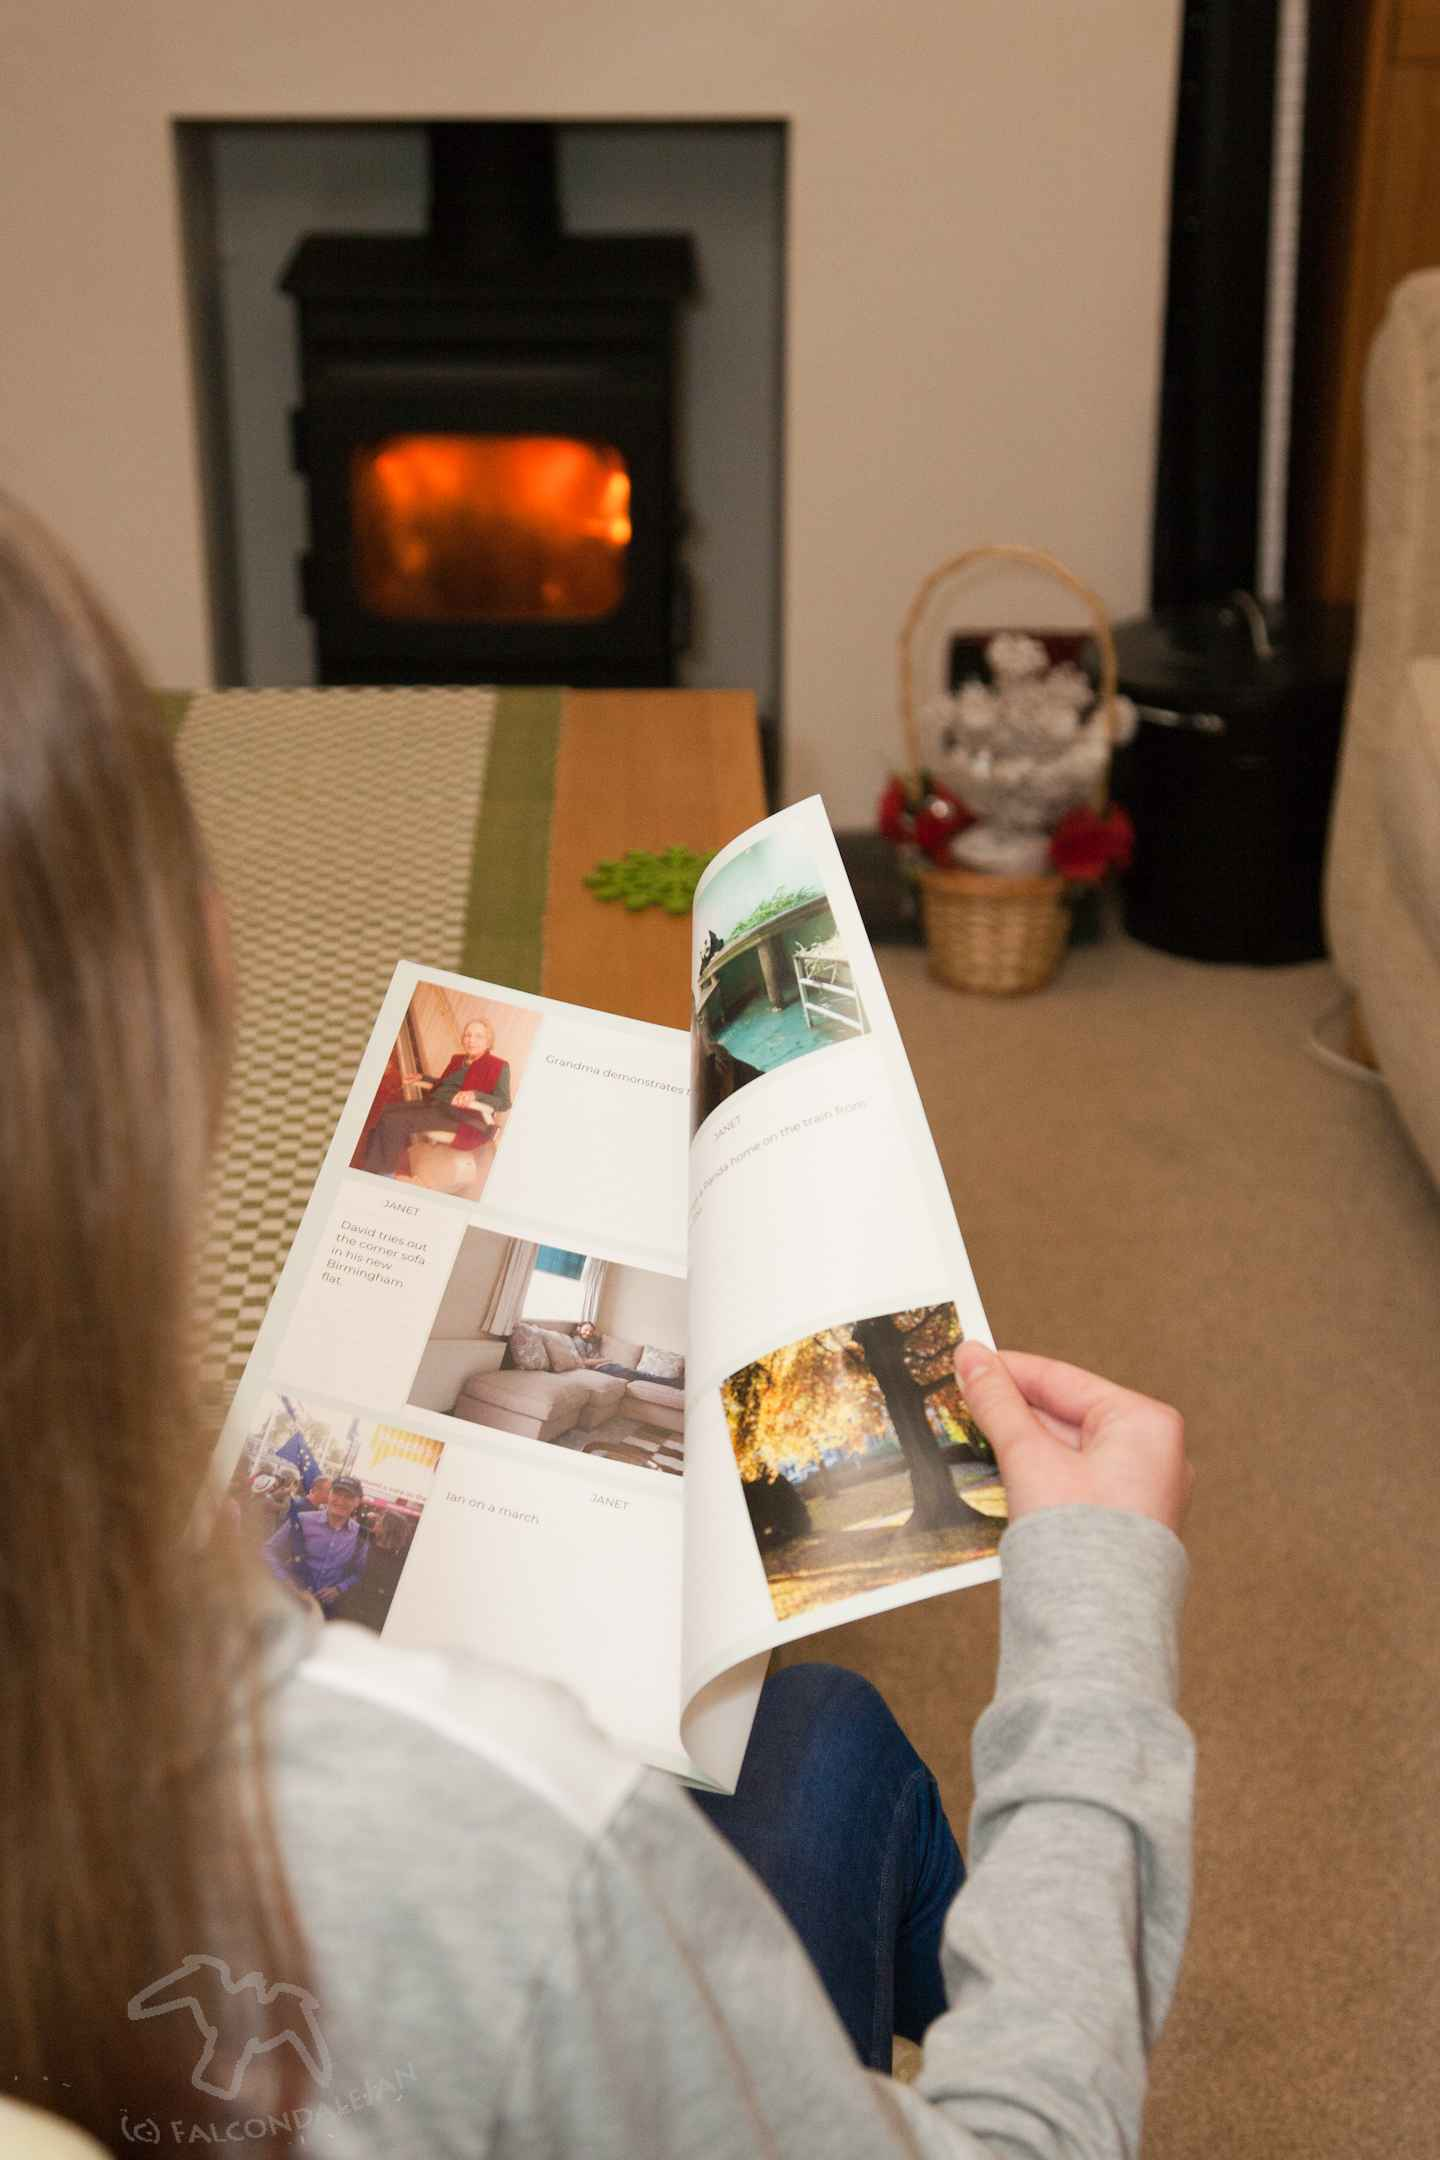 We test a photo sharing app which sends your family snaps every month as a printed album, perfect for Grandparents. Neveo, the photo sharing solution for keeping Grandparents in touch with Family on Falcondale Life blog. Image description: Flicking through the Neveo photo journal in front of a roaring fire.